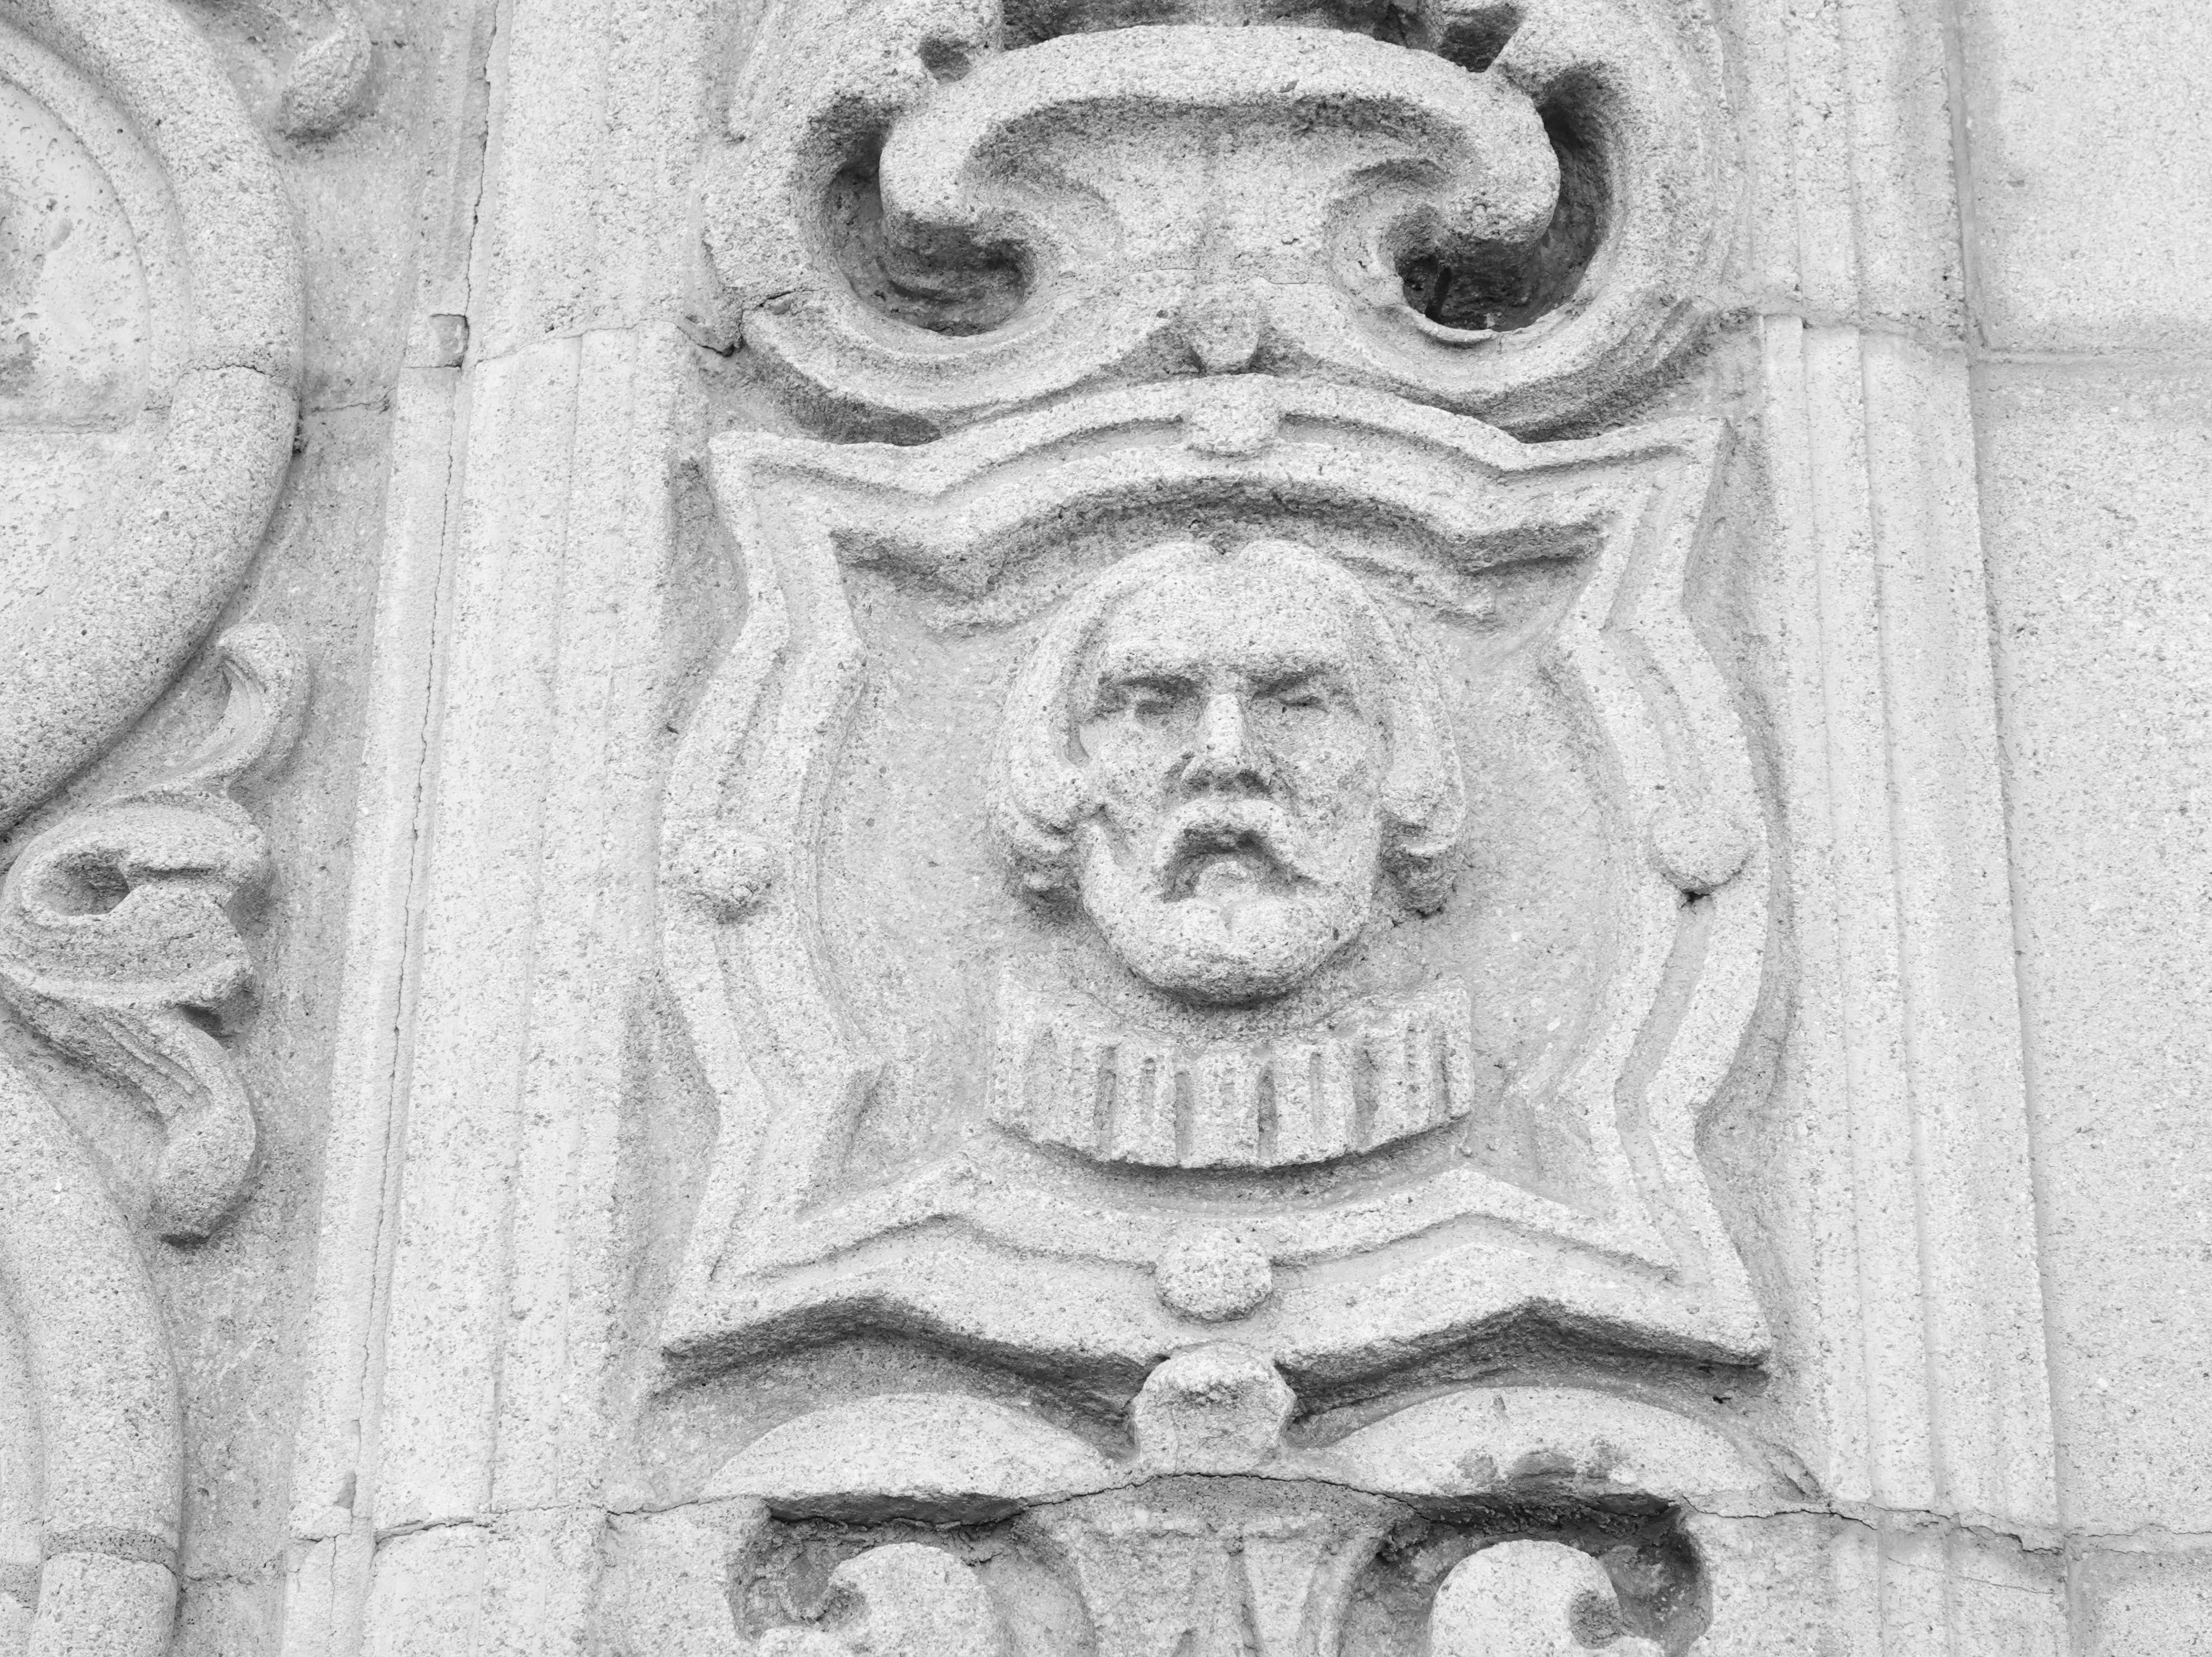 Carving on the side of the San Marcos building on downtown State Street in Santa Barbara.